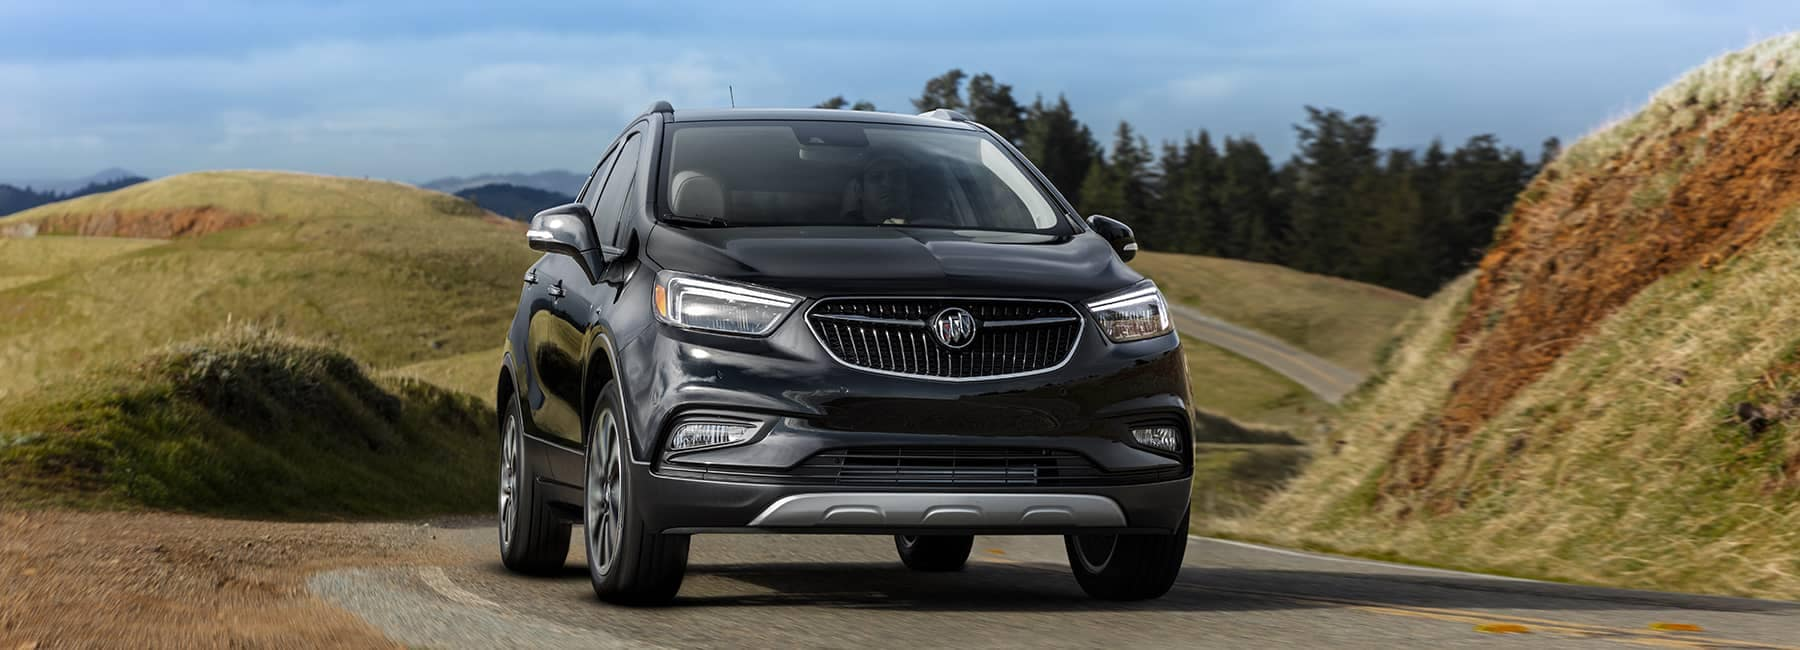 Buick Banner Image - Black 2020 Buick Encore